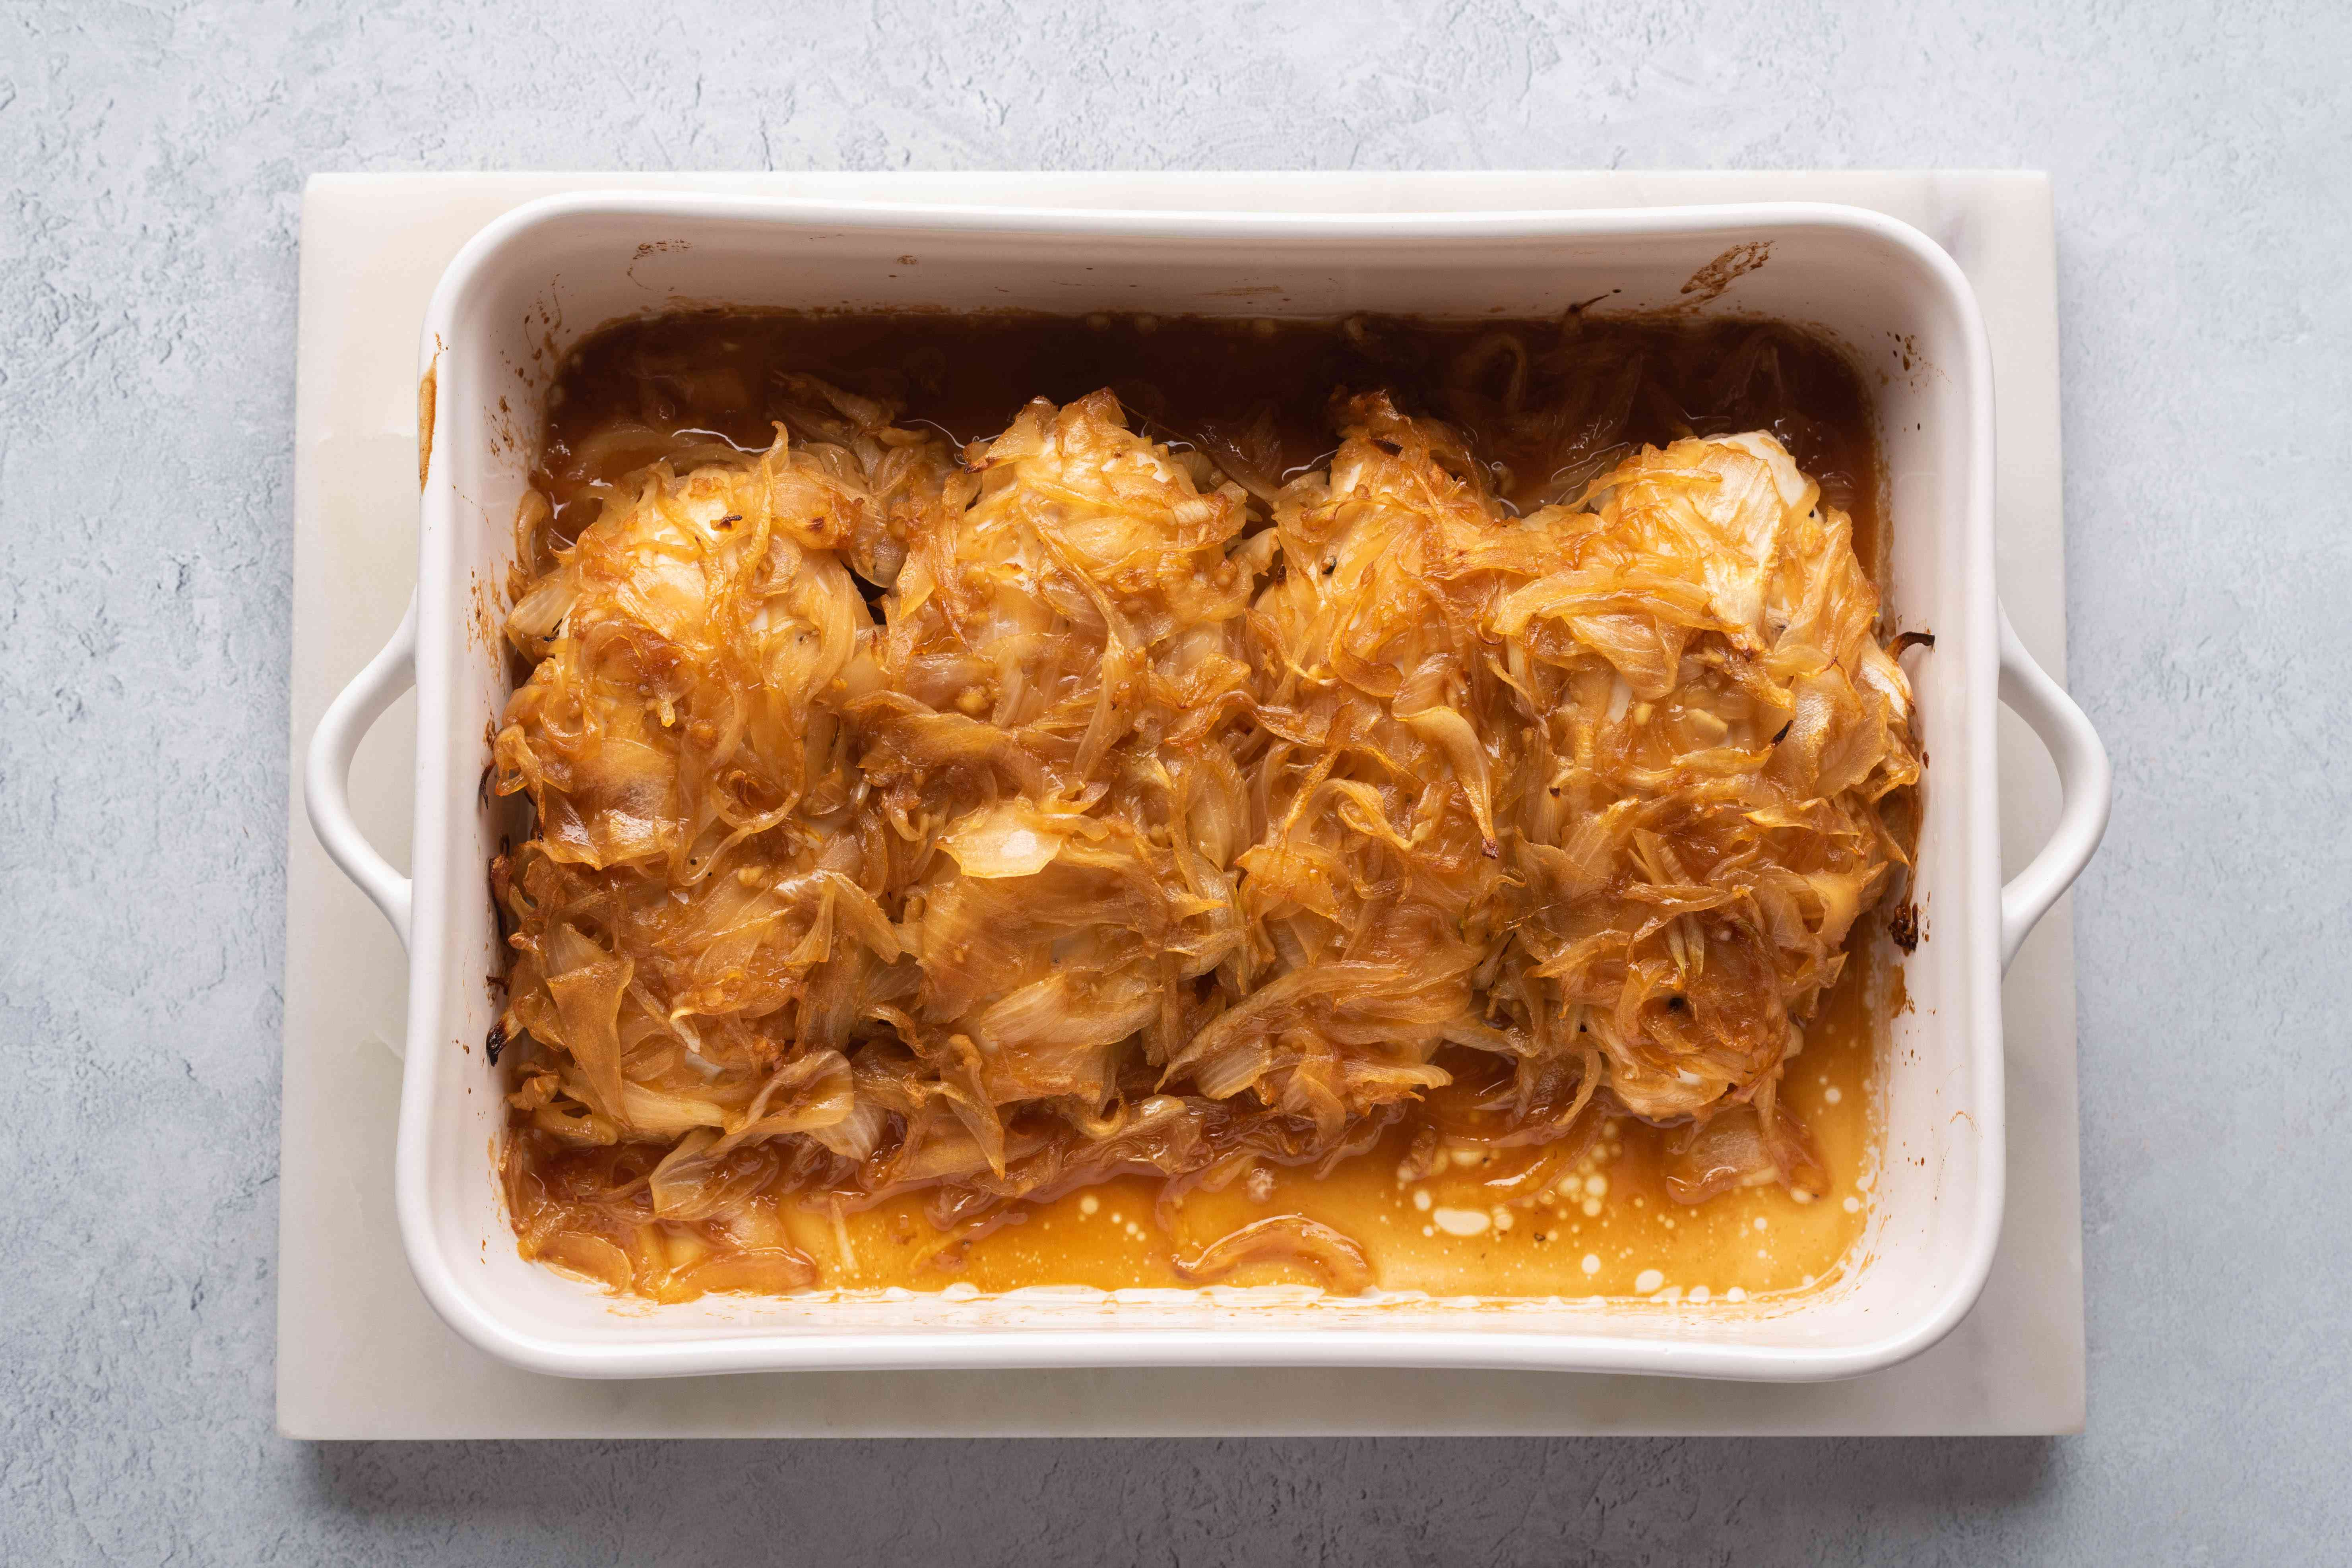 baked chicken in a baking dish